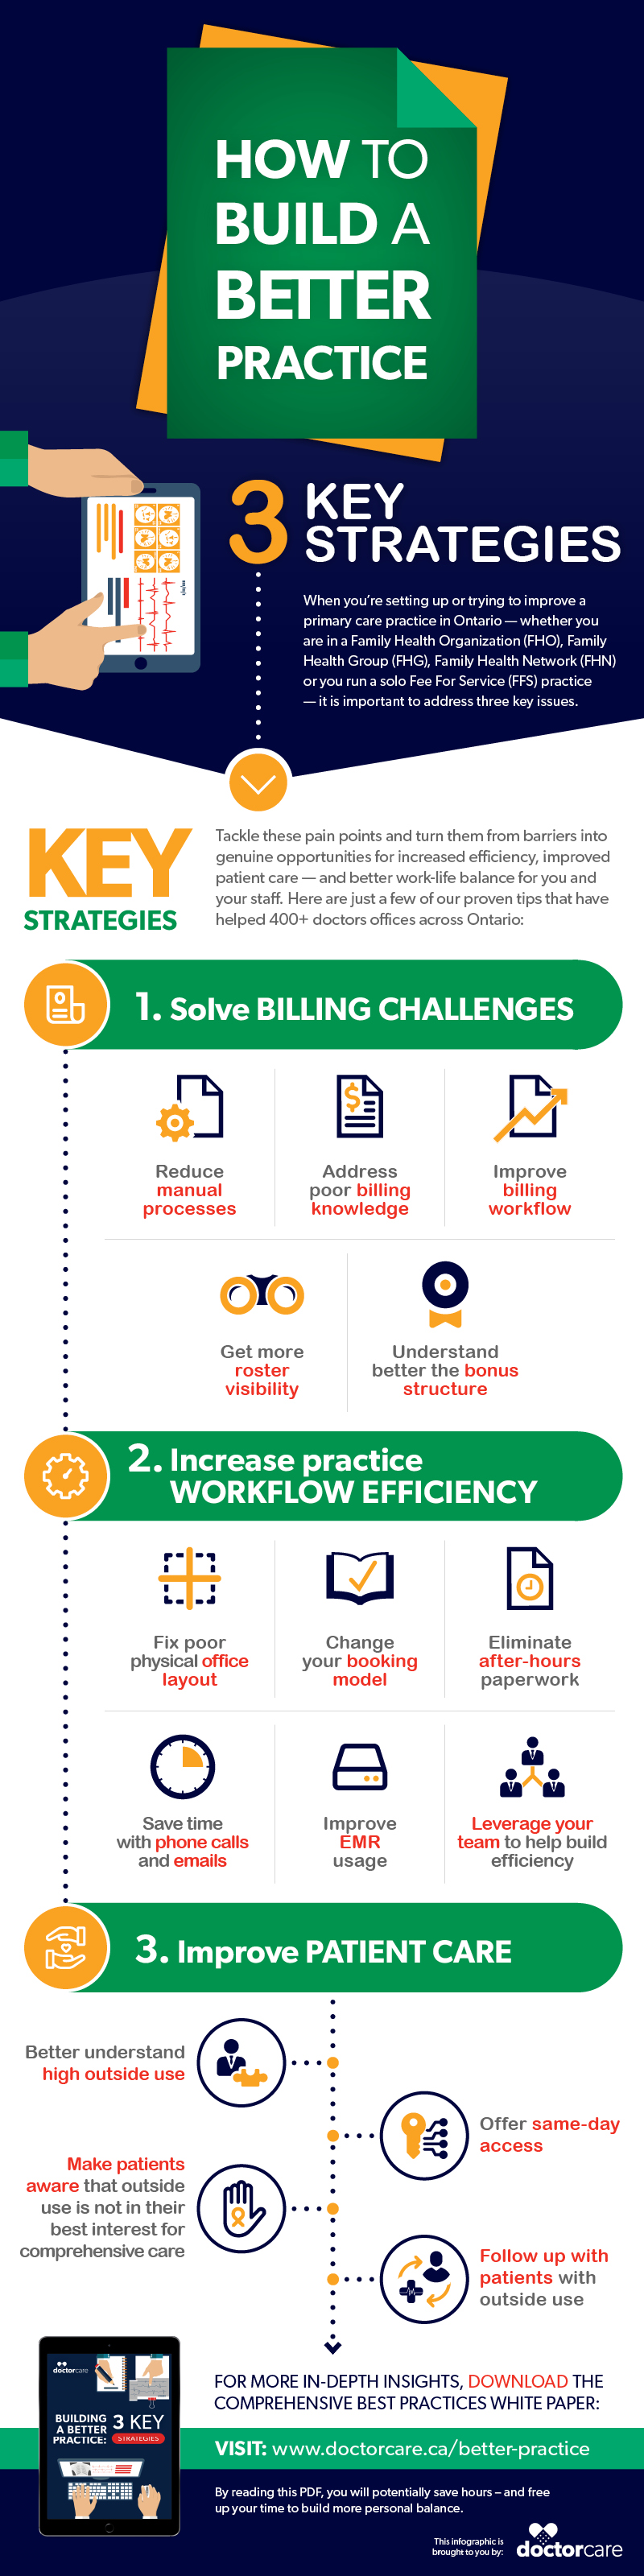 INFOGRAPHIC How to Build a Better Practice - Key Strategies